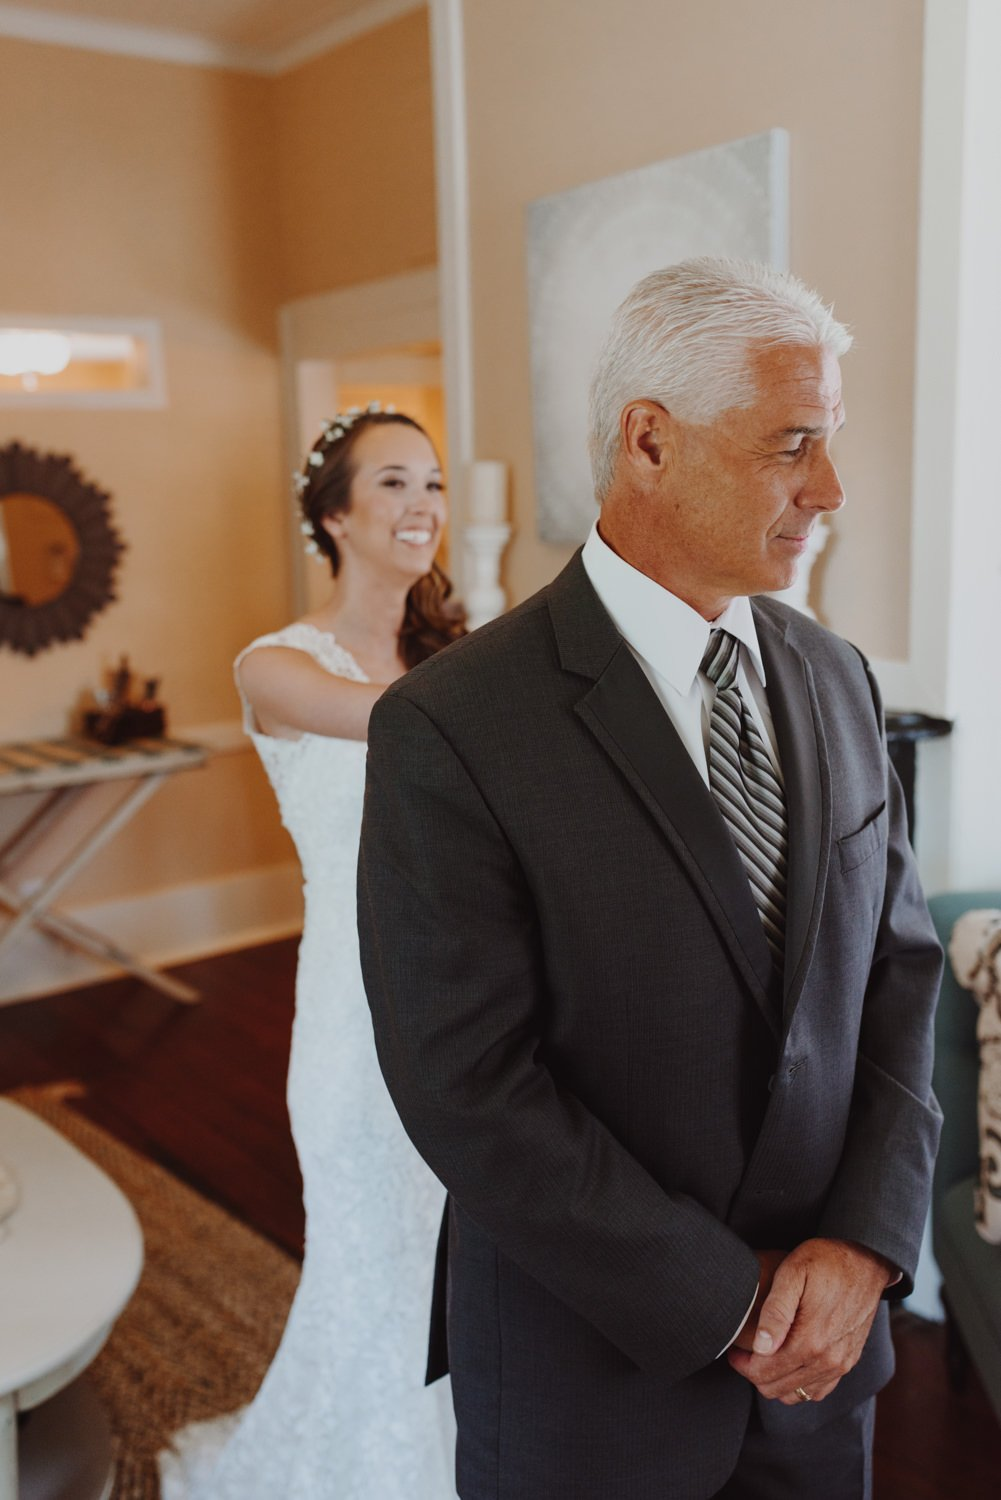 First look between bride and father of the bride